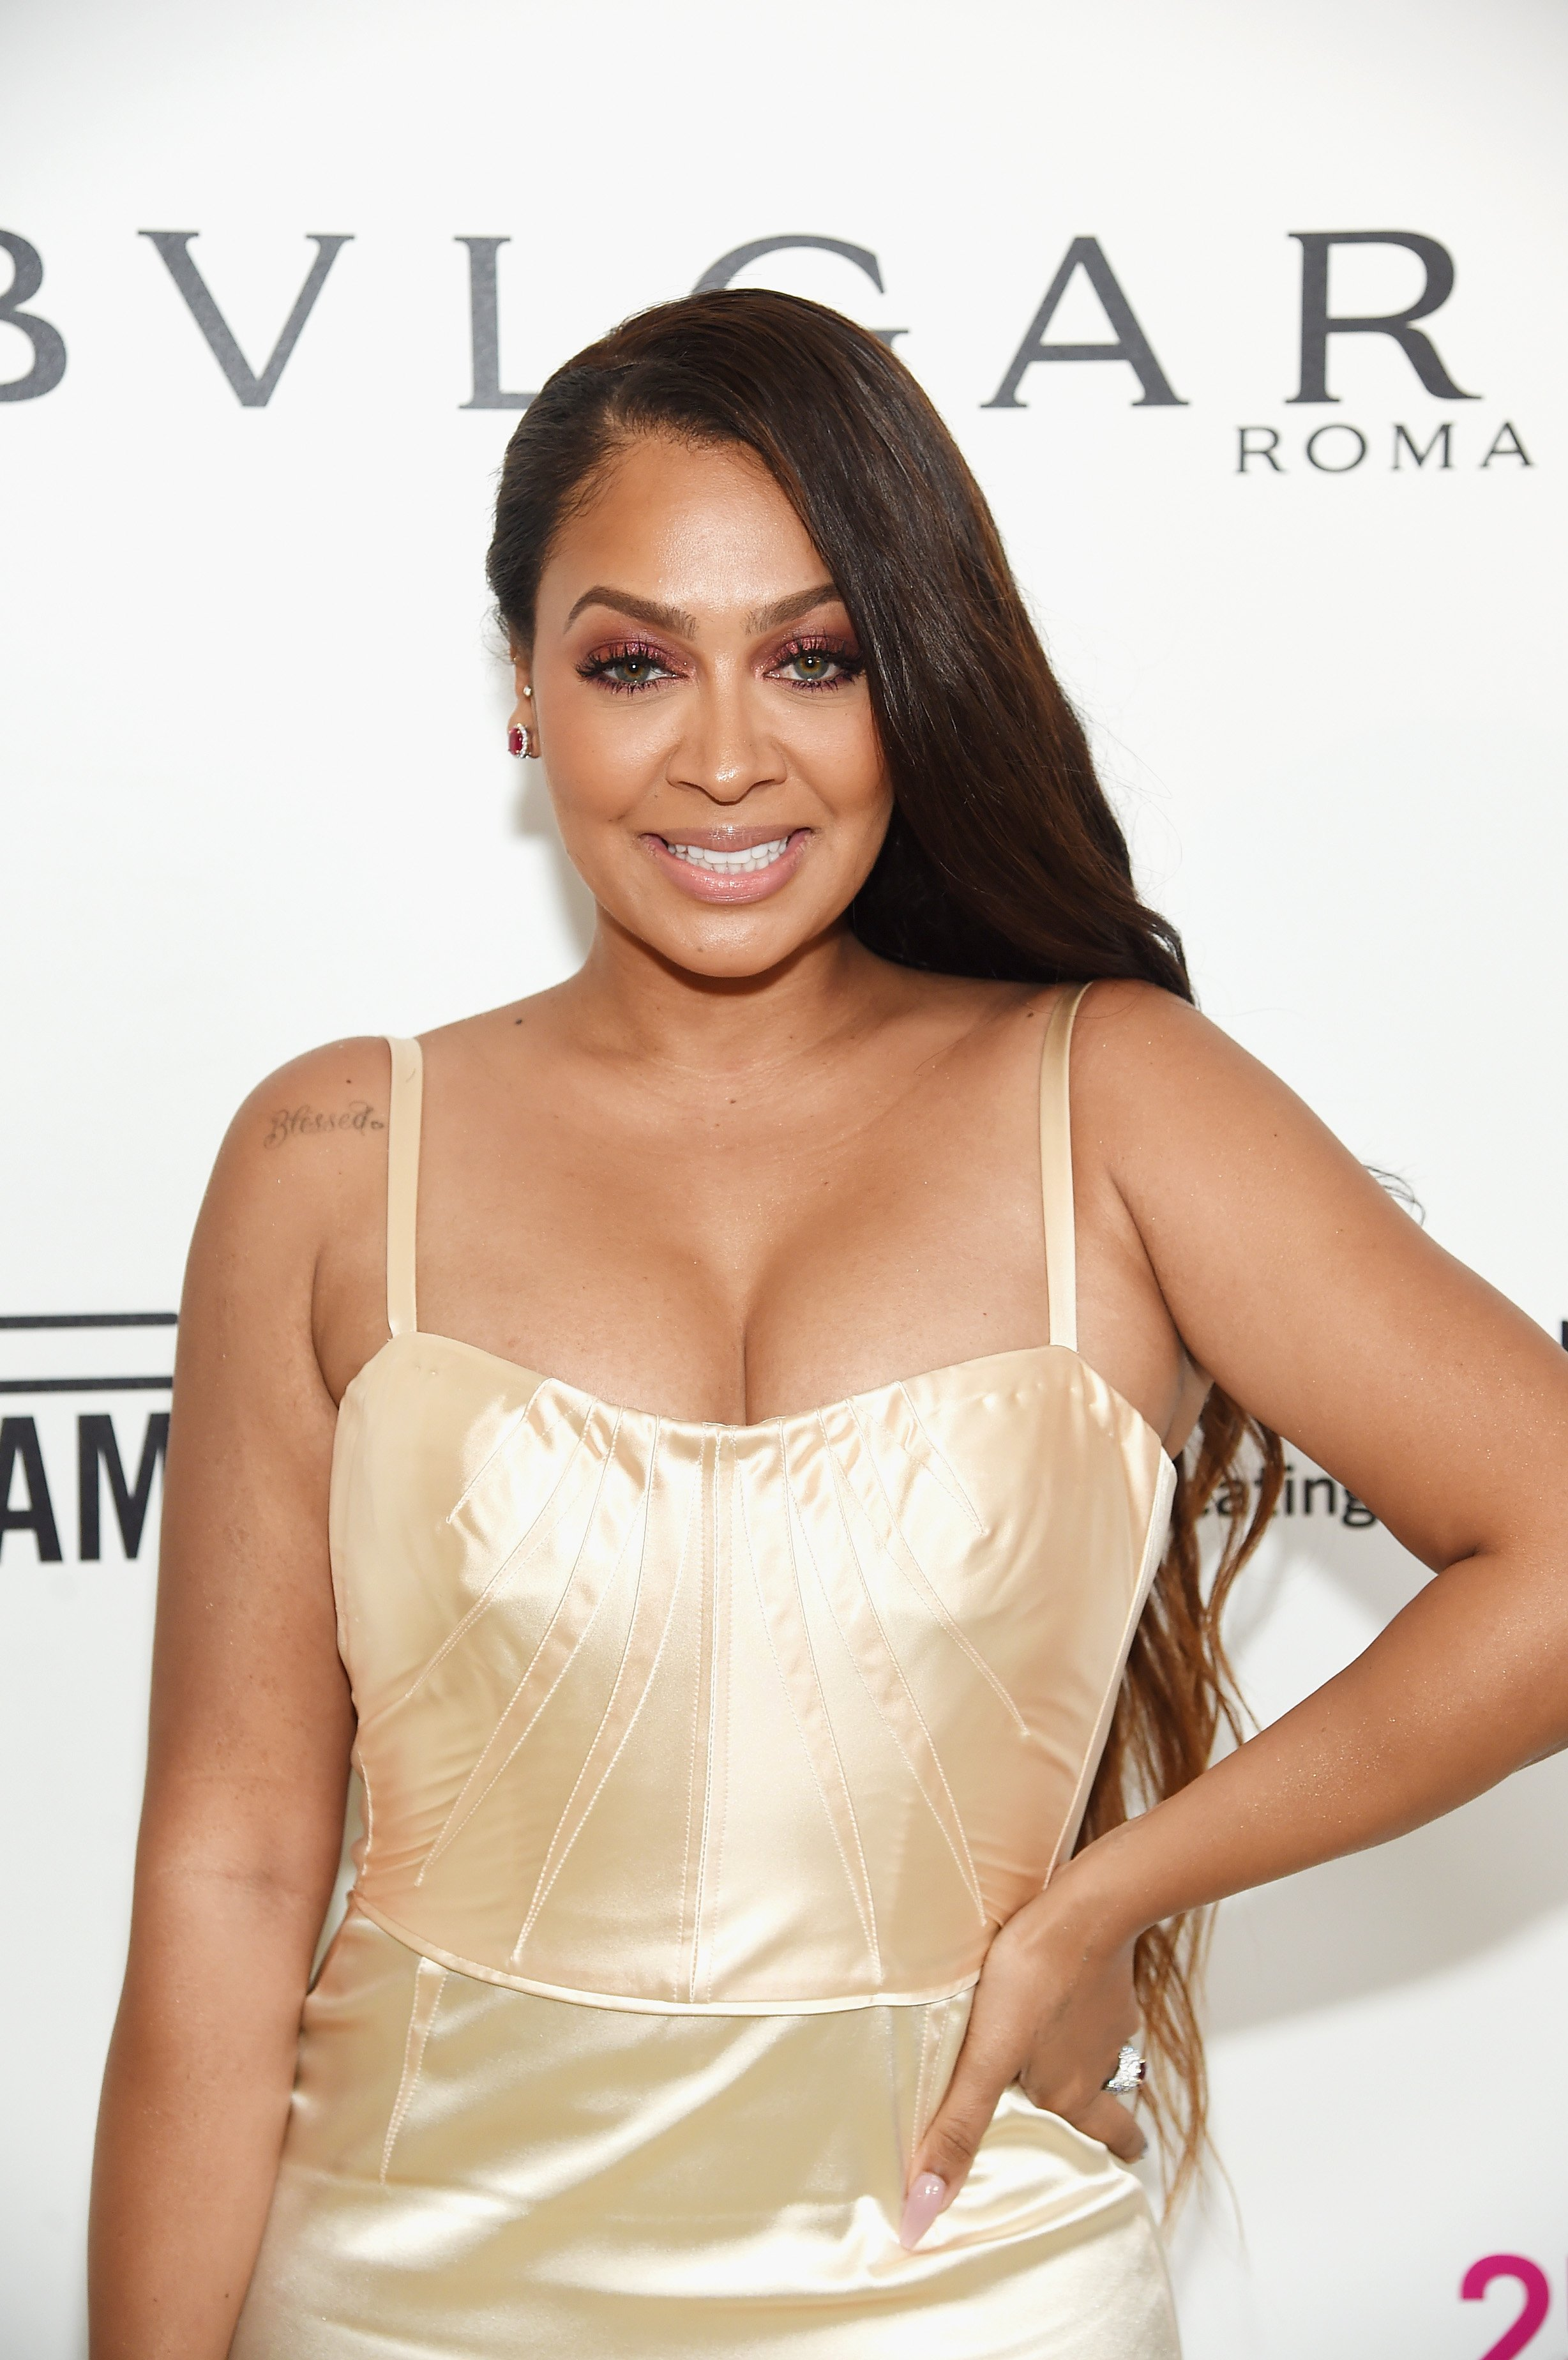 La La Anthony attends the 26th annual Elton John AIDS Foundation Academy Awards Viewing Party on March 4, 2018 in West Hollywood, California. | Source: Getty Images